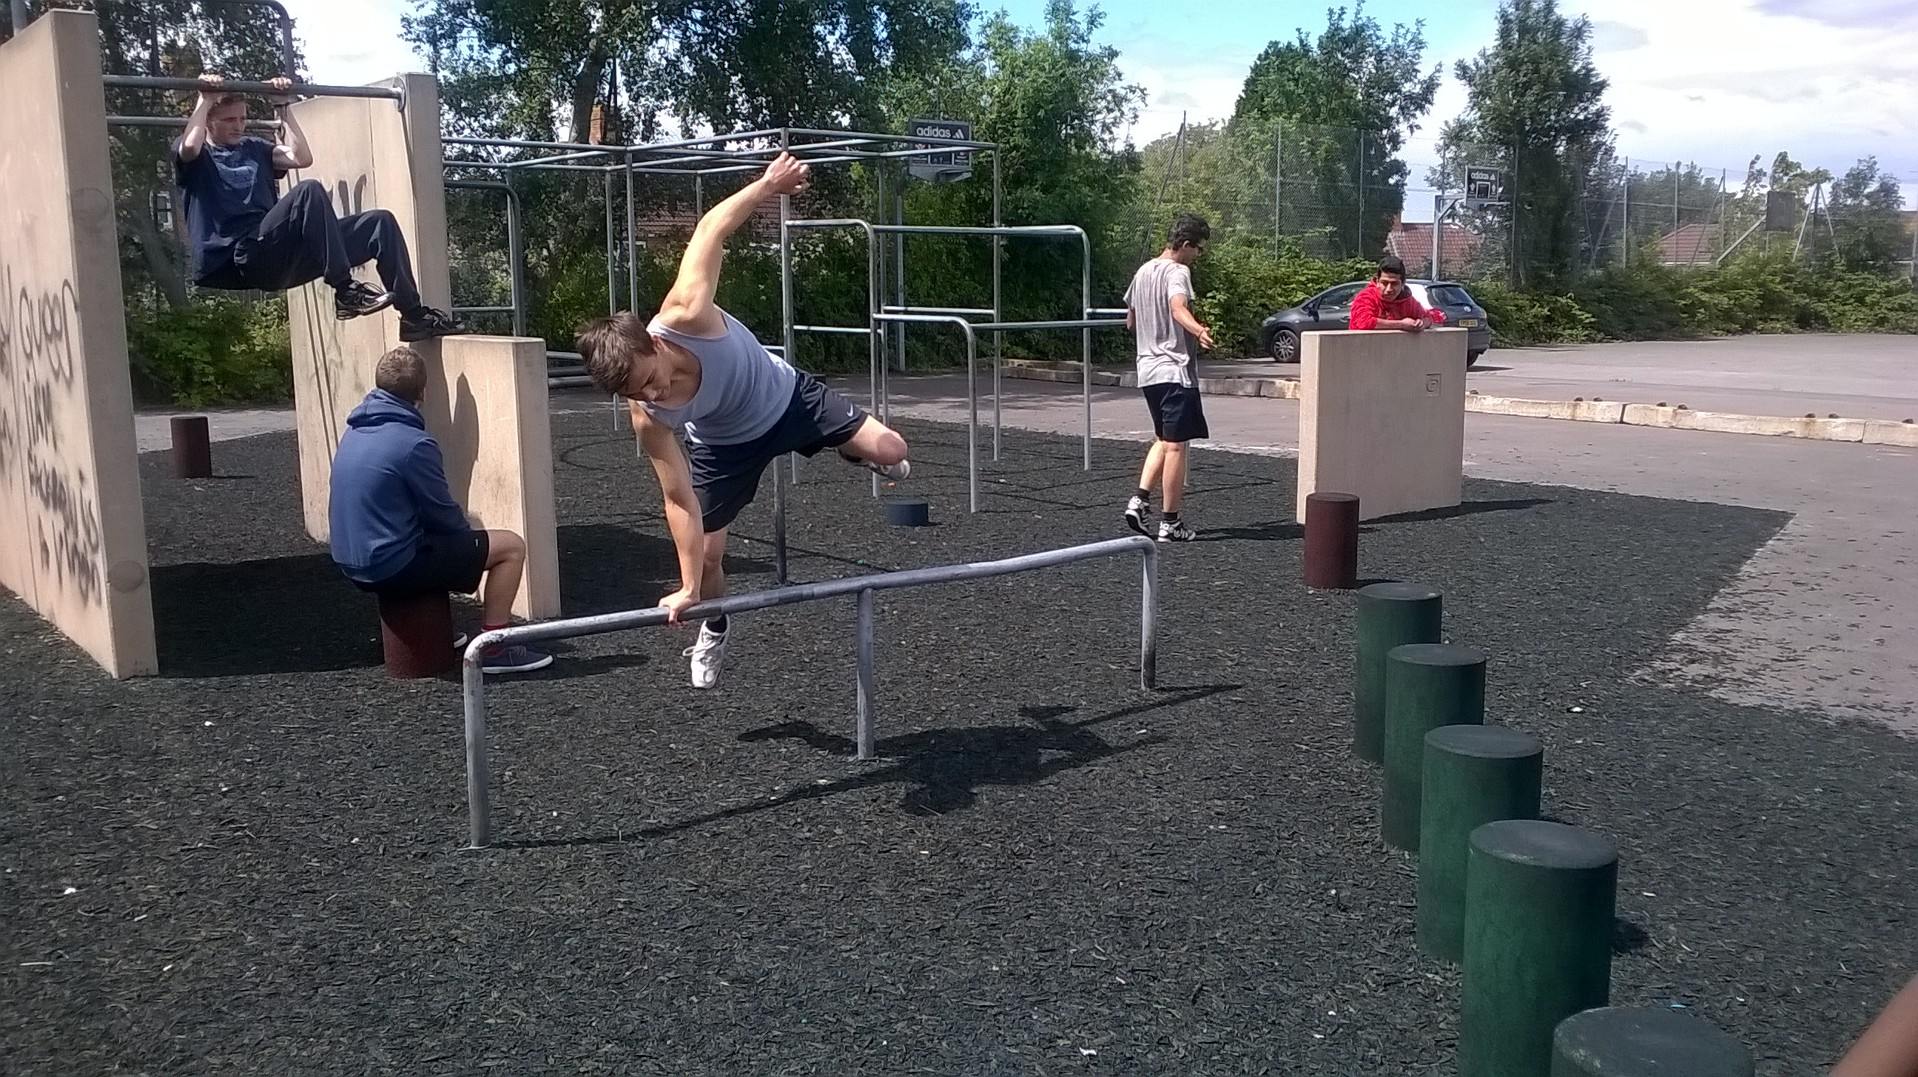 A young man jumping over an obstacle